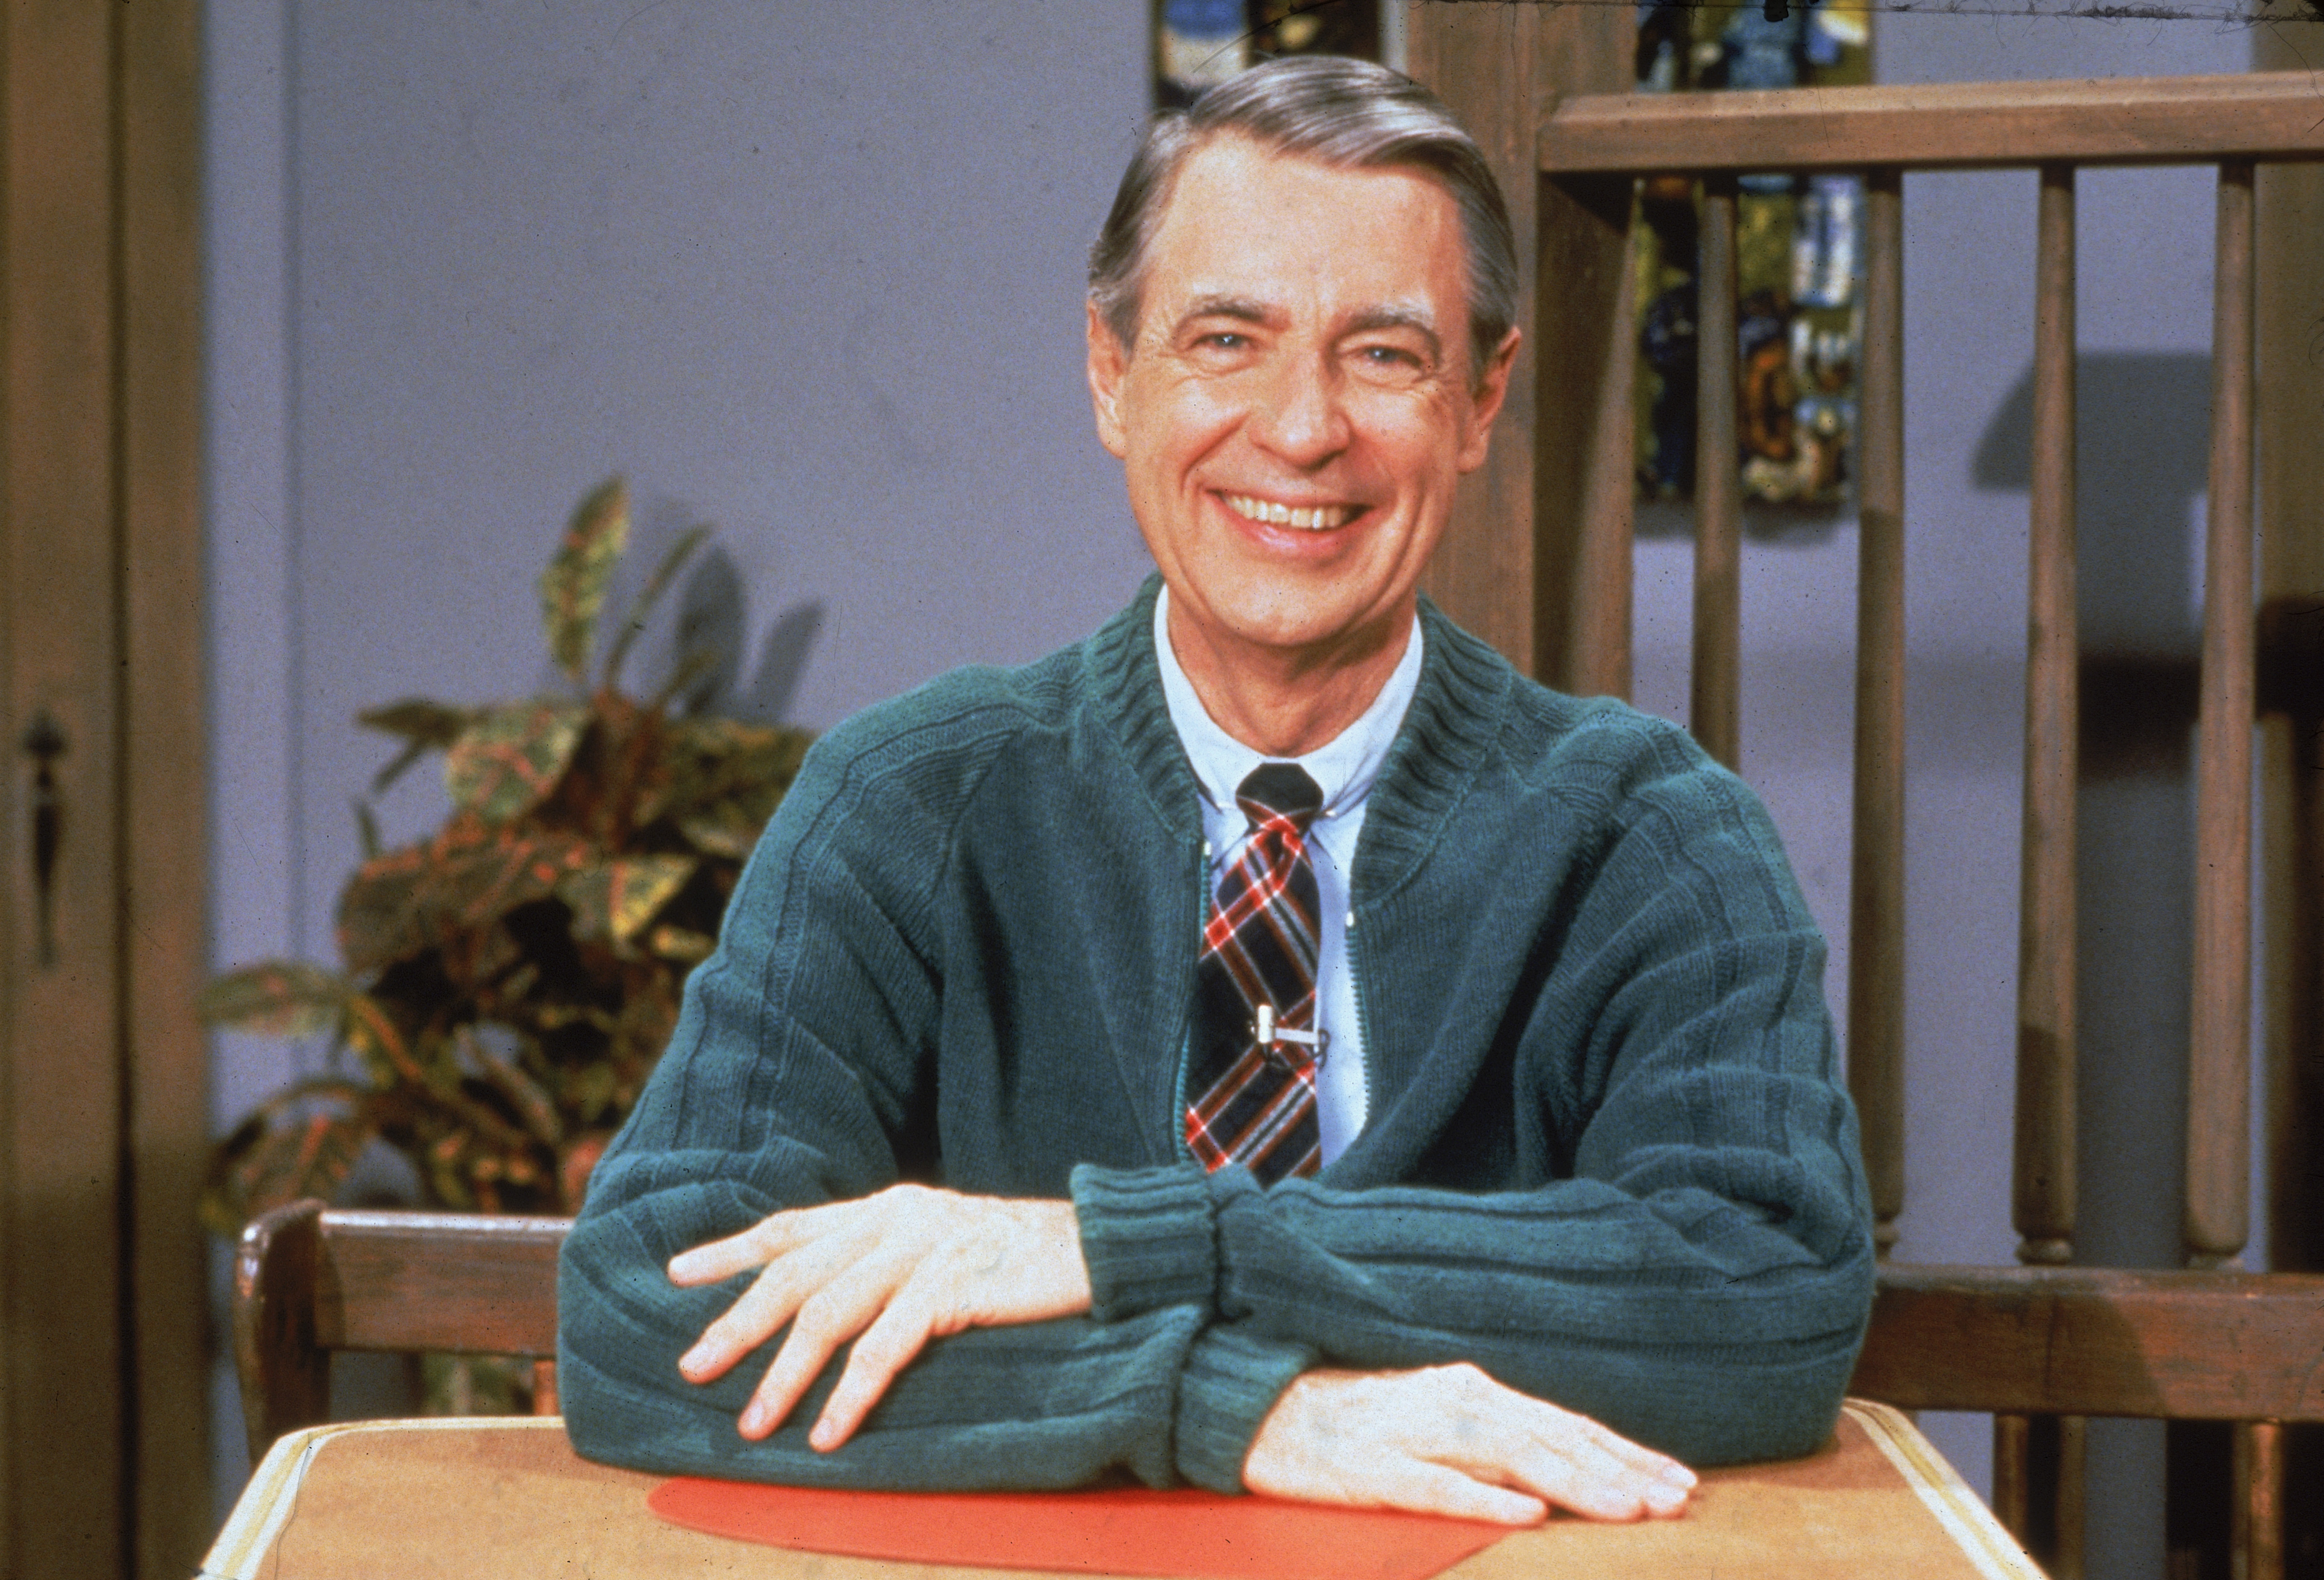 'Won't You Be My Neighbor?' Will Remind You To Be A Bit More Neighborly